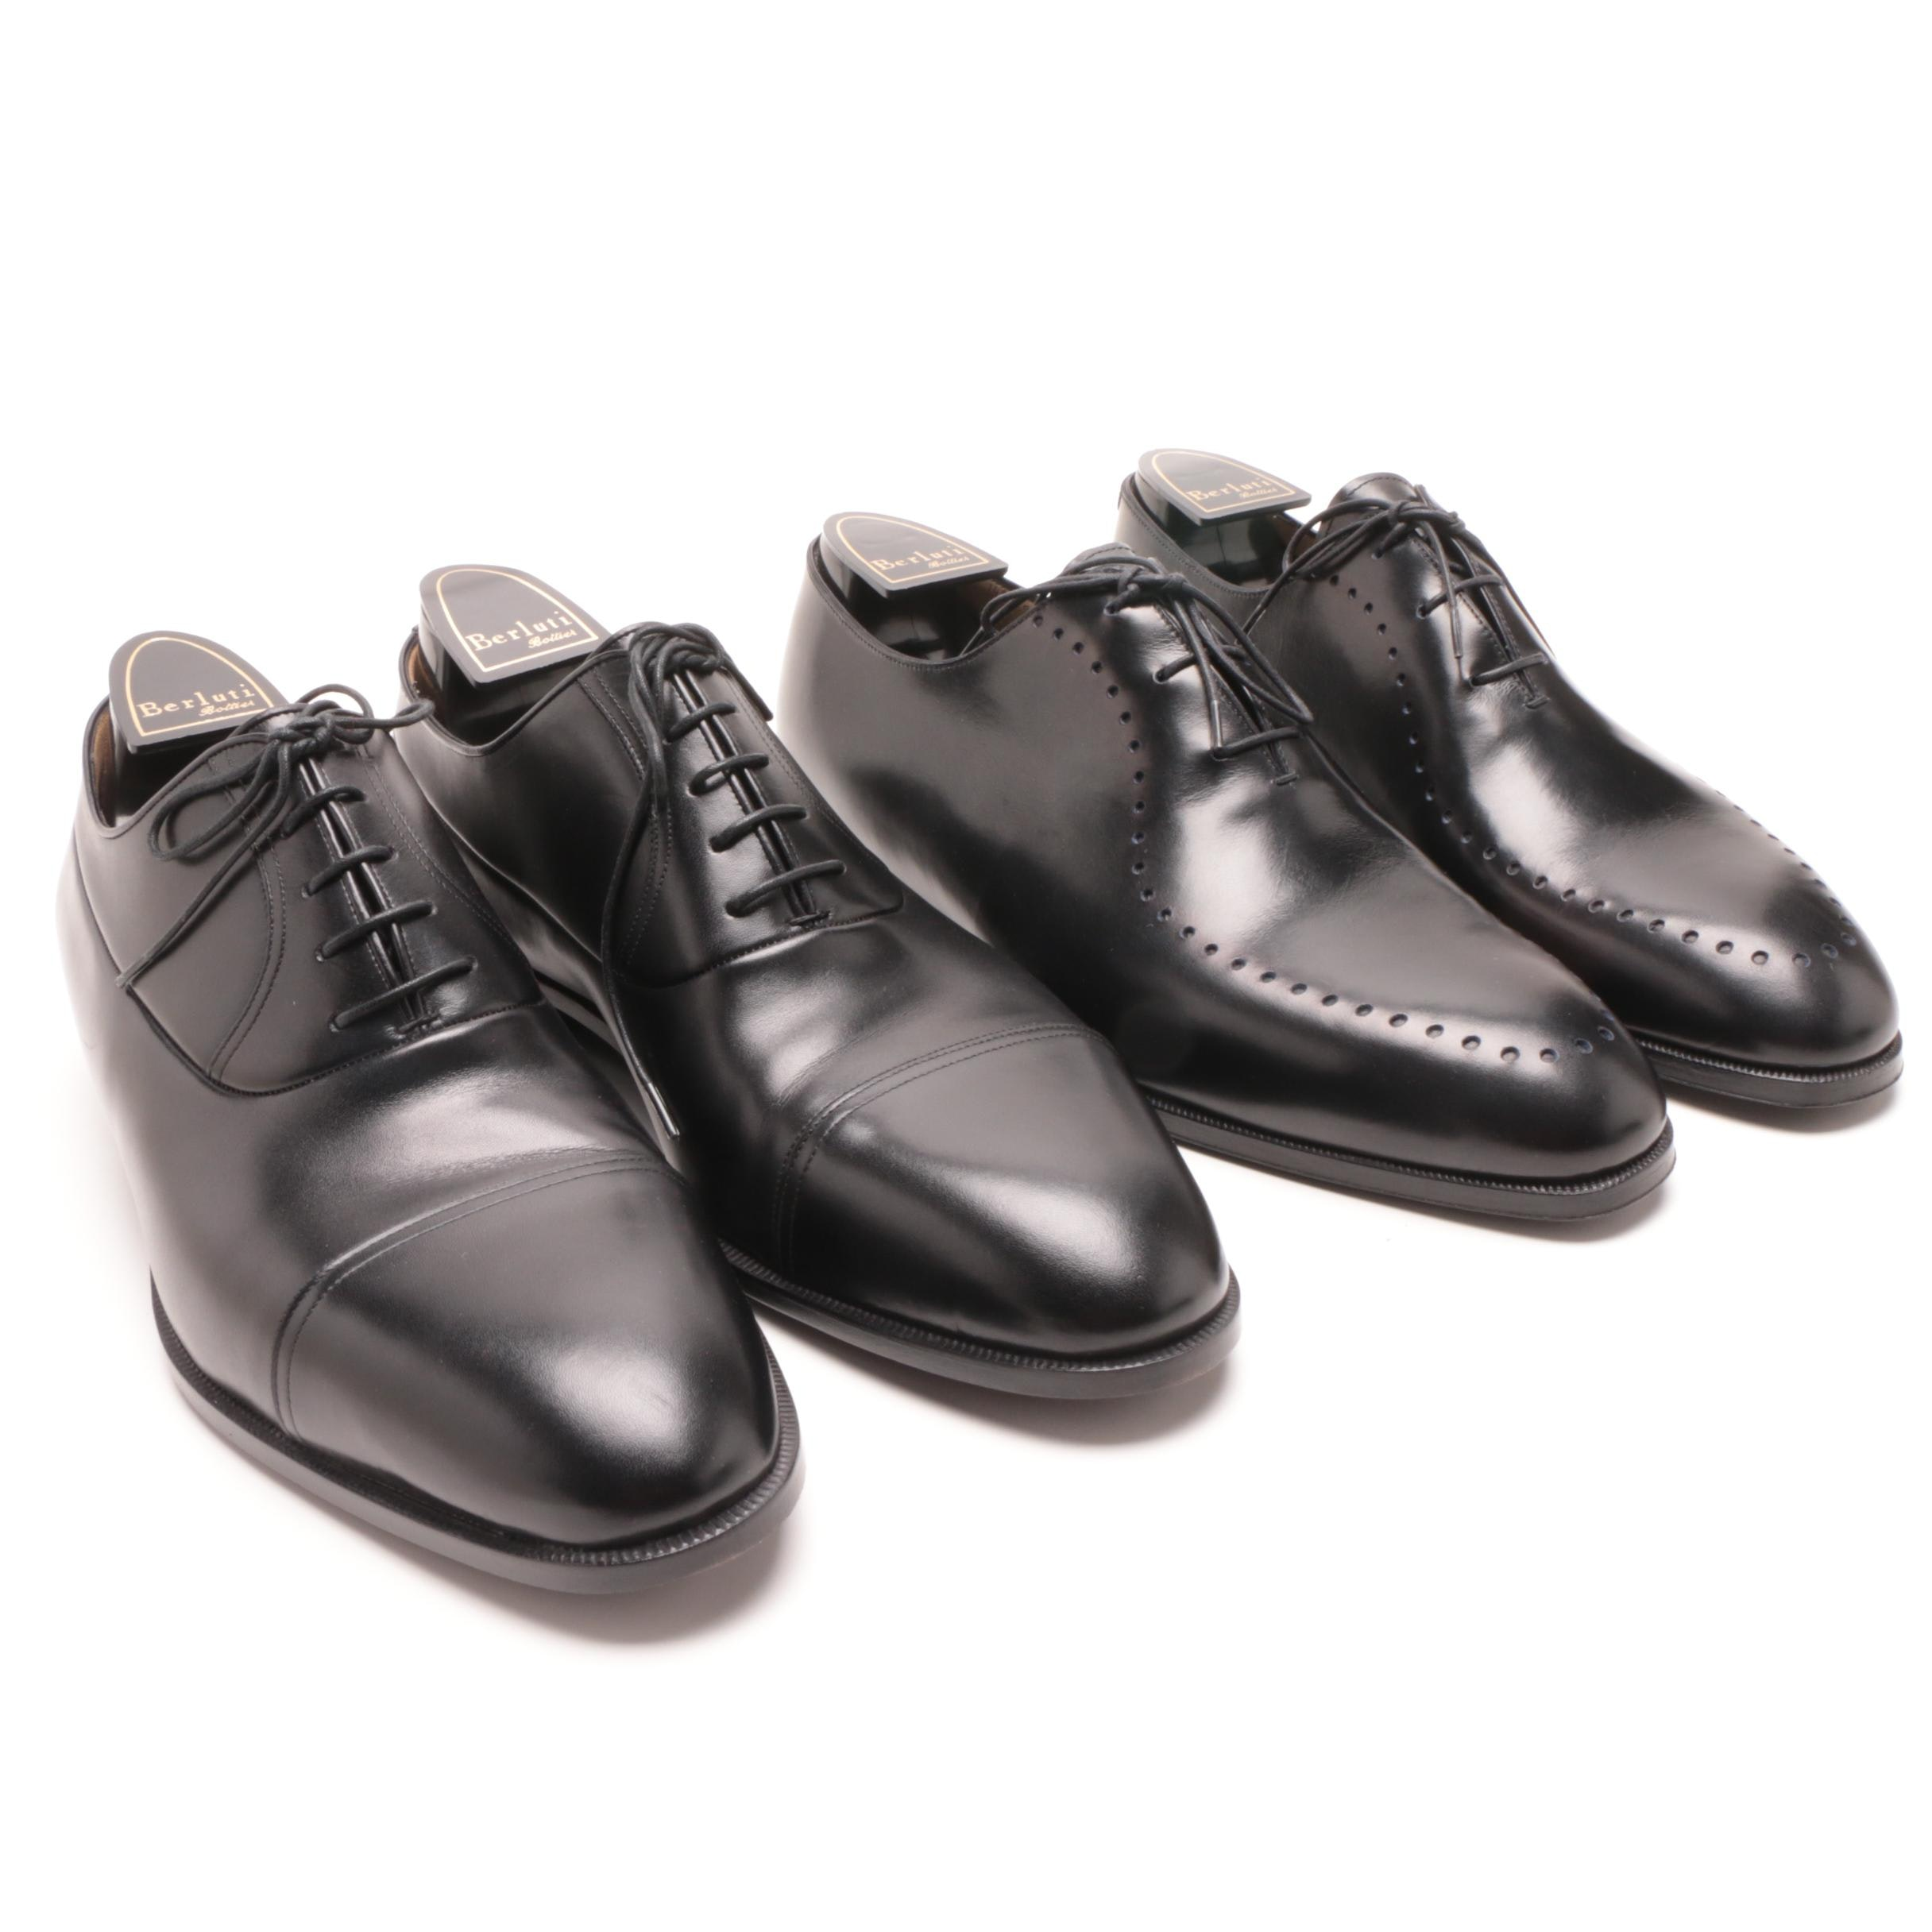 Berluti Black Leather Dress Shoes